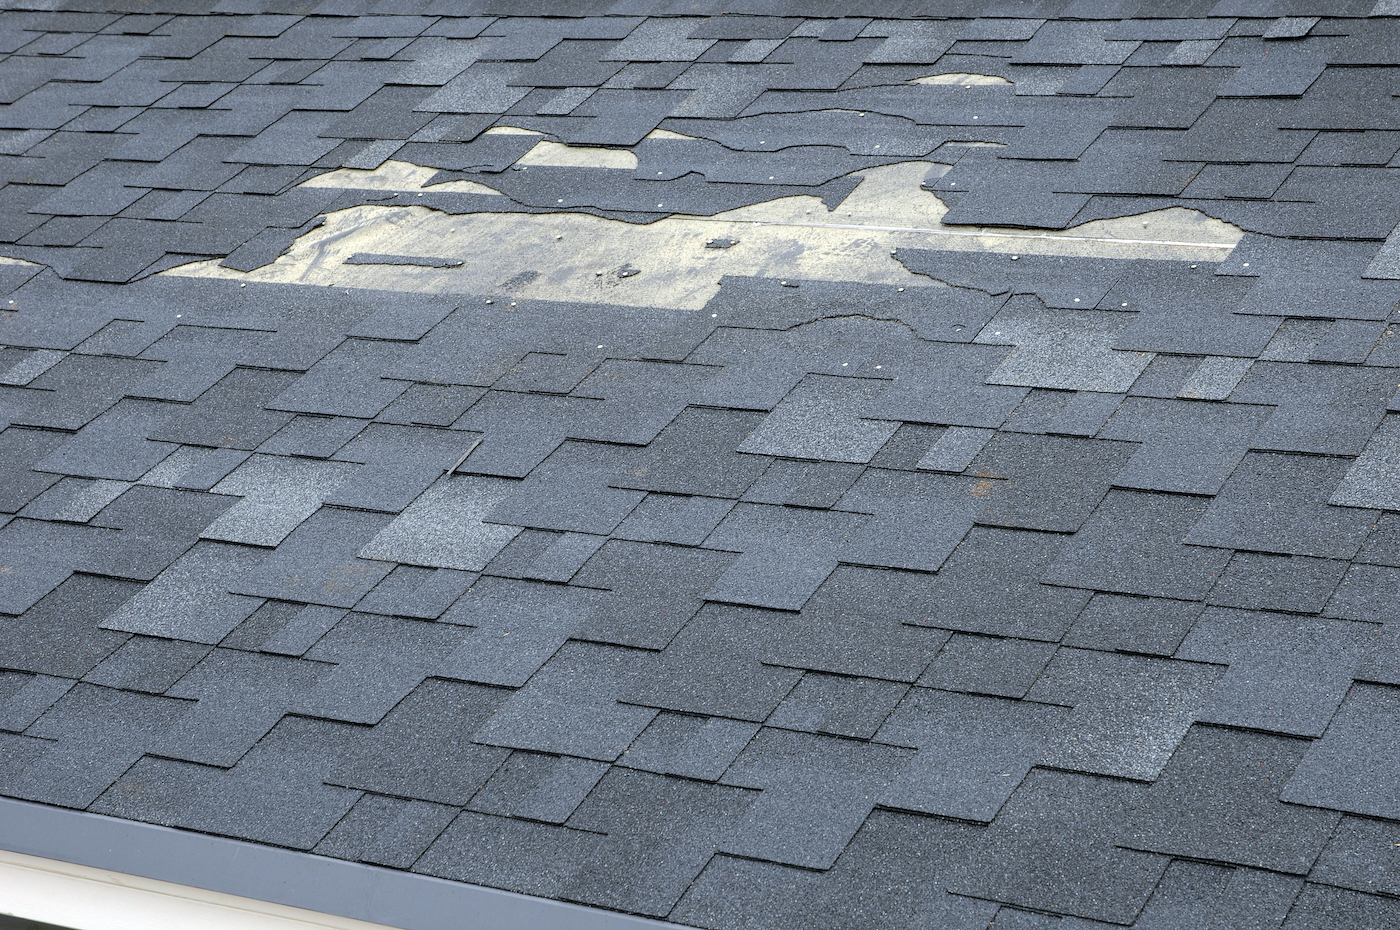 roof with severe shingle damage and missing shingles